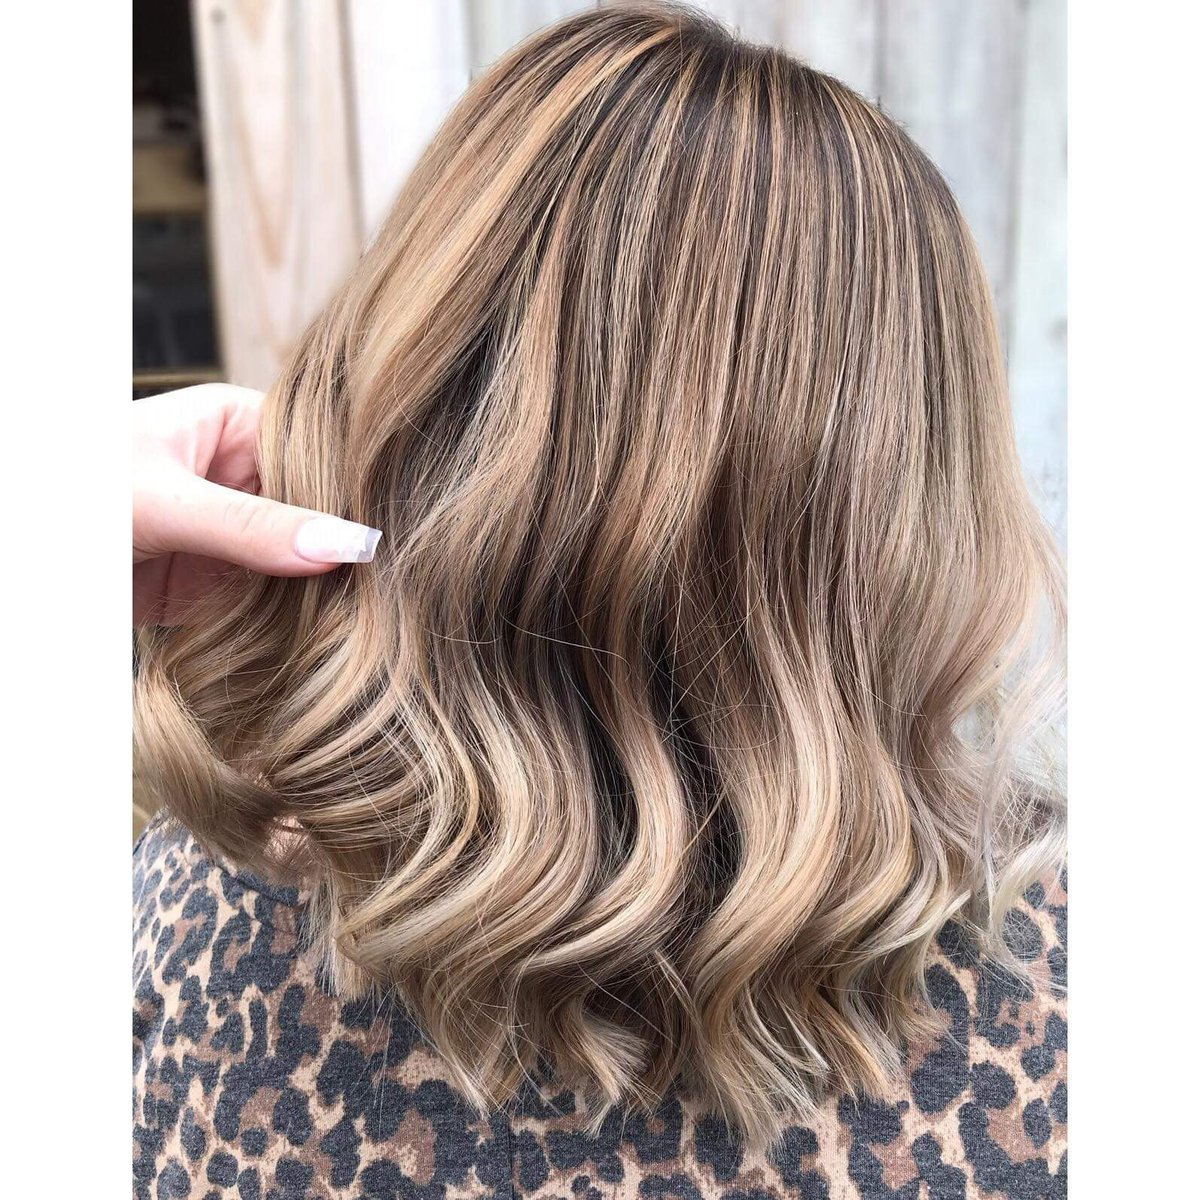 Butterscotch is my favorite Created by #zonastylistkatie #zona #zonahingham #aveda #avedacolor #southshore ##southshorehairsalon #modernsalon #bayalagepic.twitter.com/ZUtNzR0vP8